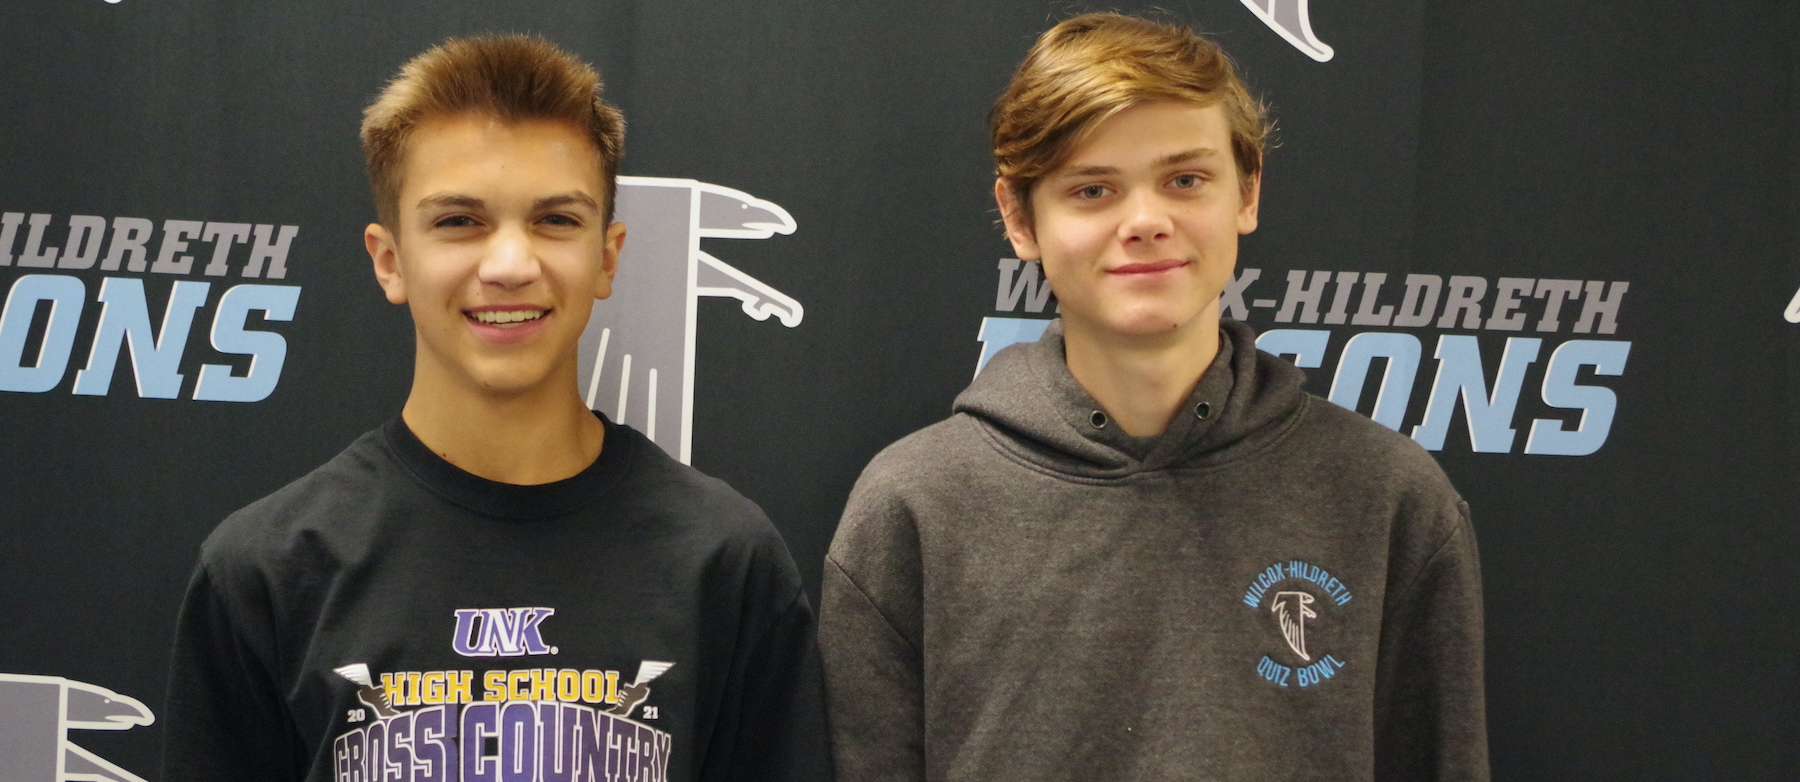 State Cross Country Qualifiers